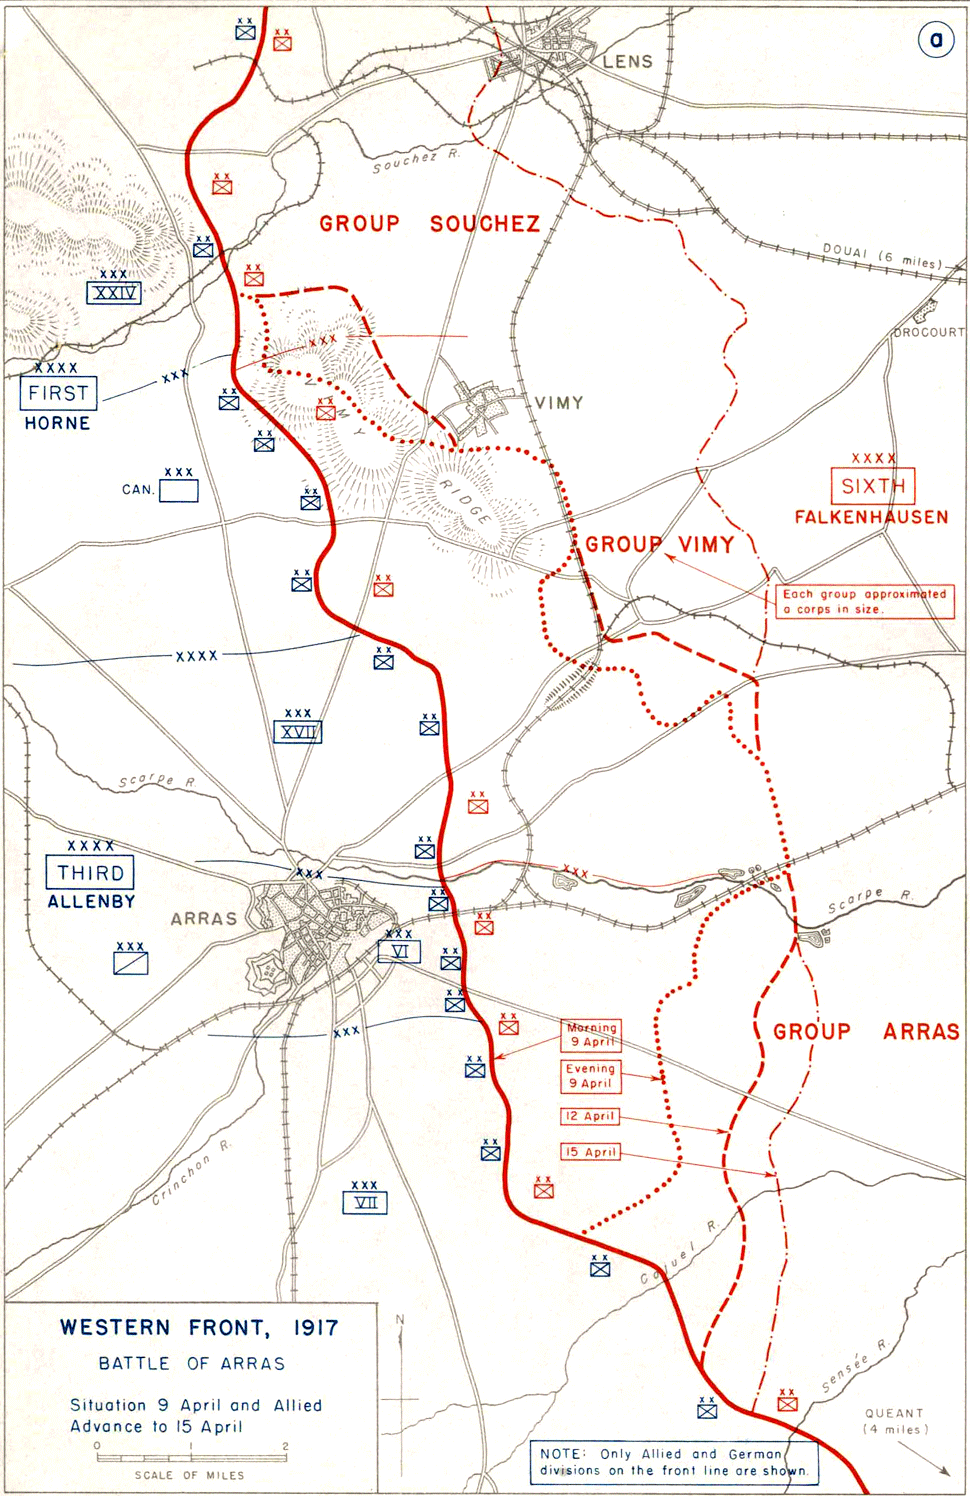 Map of the Battle of Arras (1917) showing Allied advance 9th - 15th April.